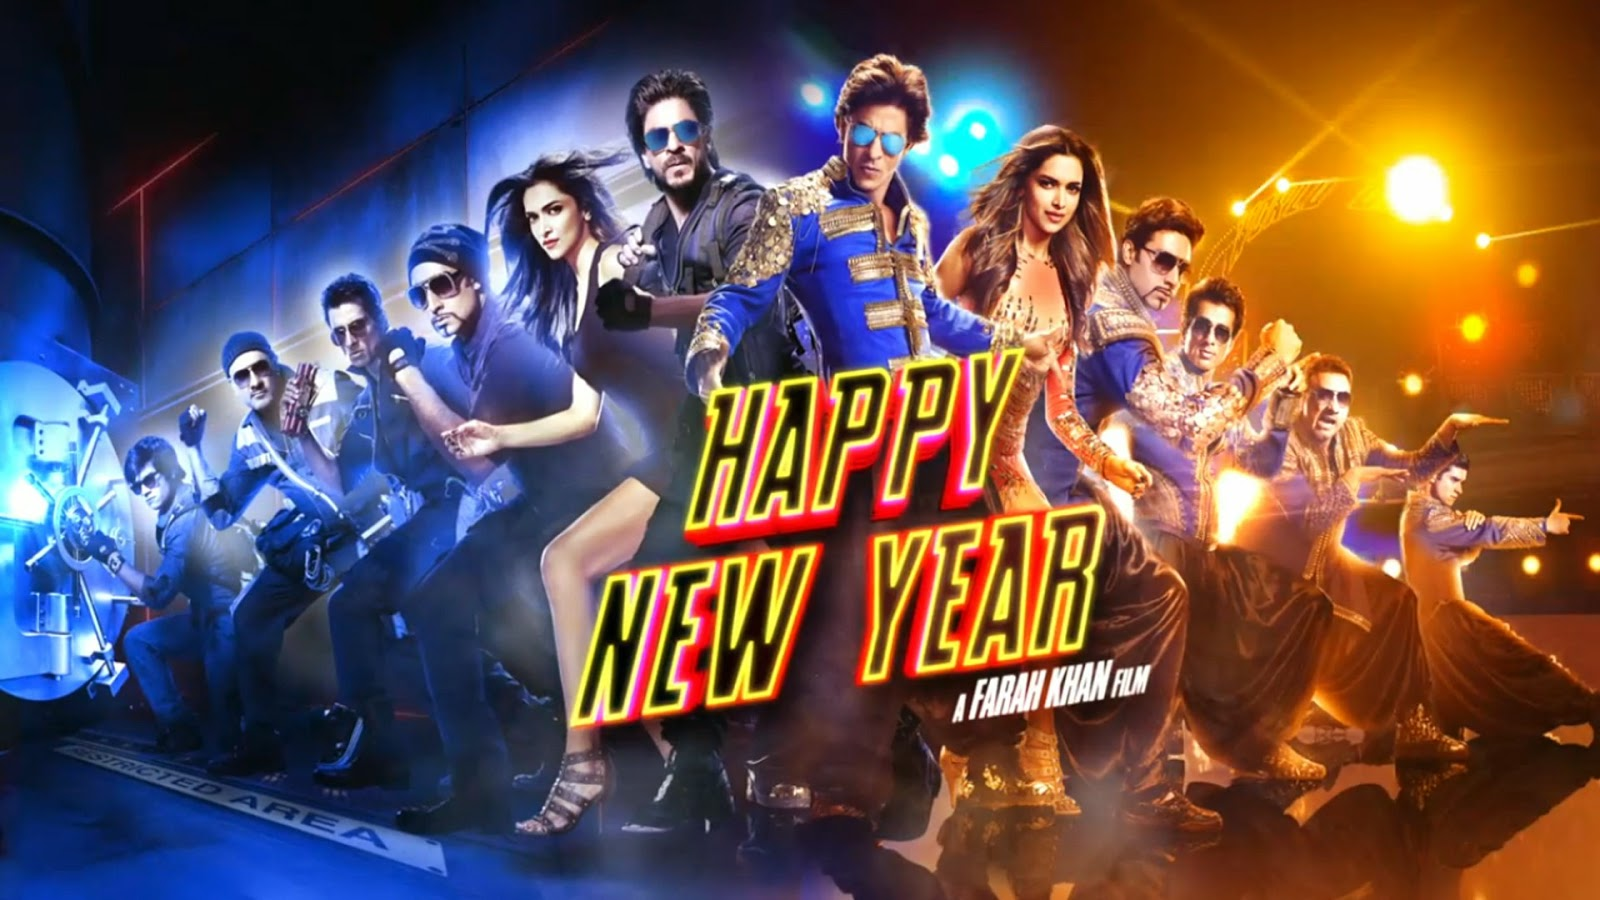 Happy new year movie 2014 watch online in hd shareonsite happy new year movie 2014 watch online in hd voltagebd Image collections